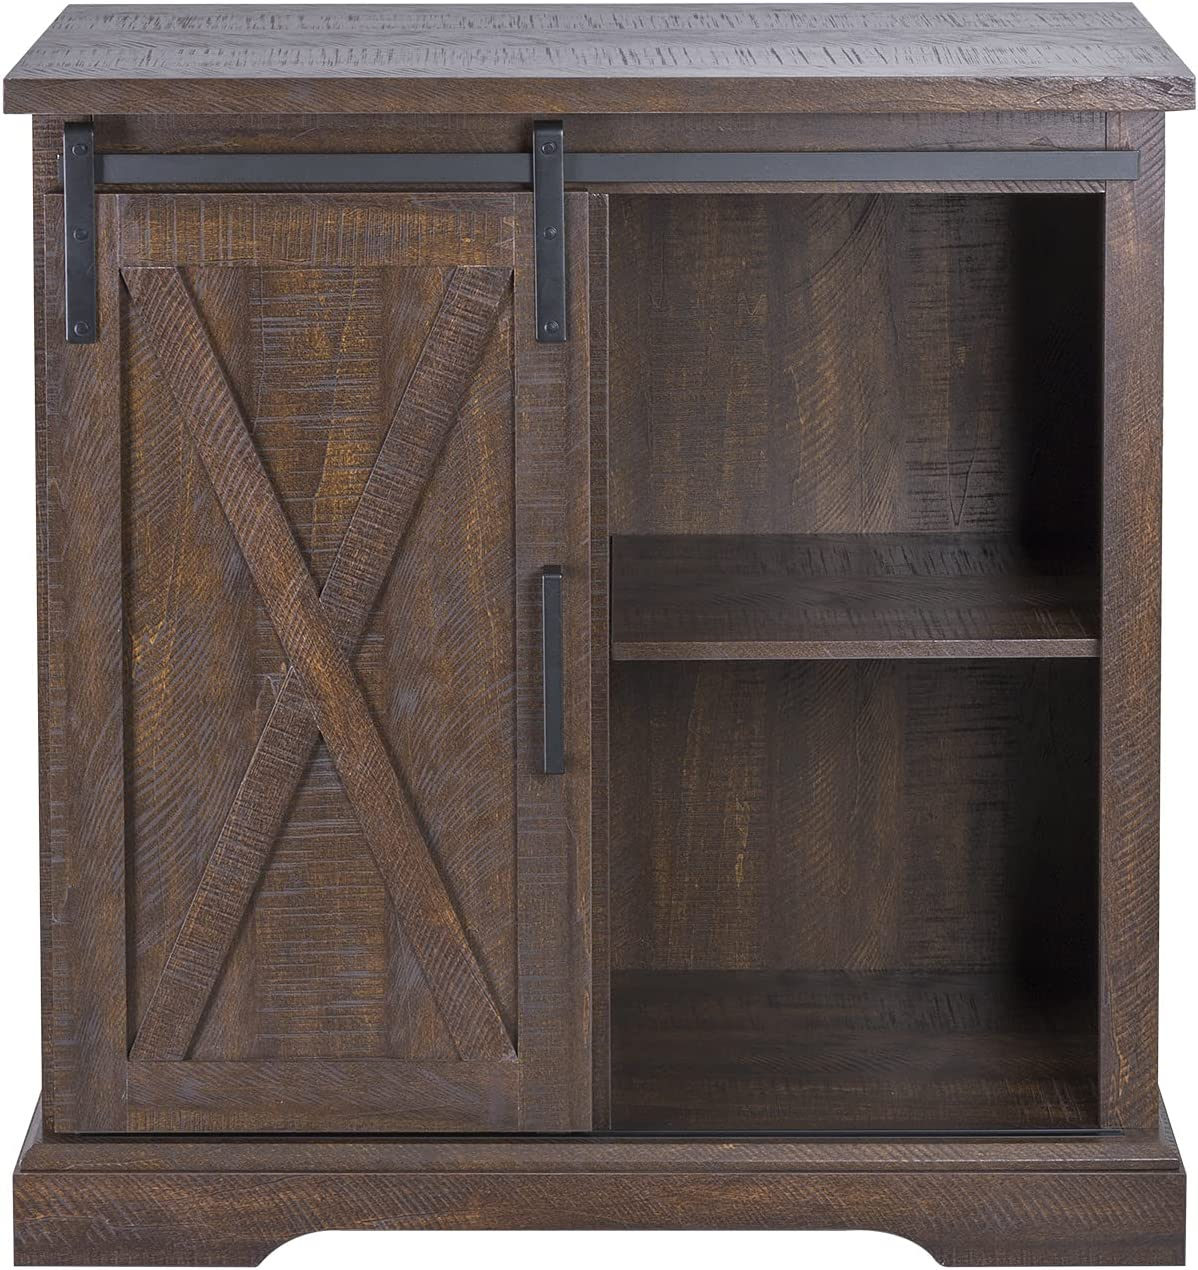 Amolife 32 Inch Farmhouse Buffet/Sideboard Cabinet, Functional Wood Barn Door Cabinet, Accent Chest, Kitchen/Dining/Living Room Furniture,Espresso